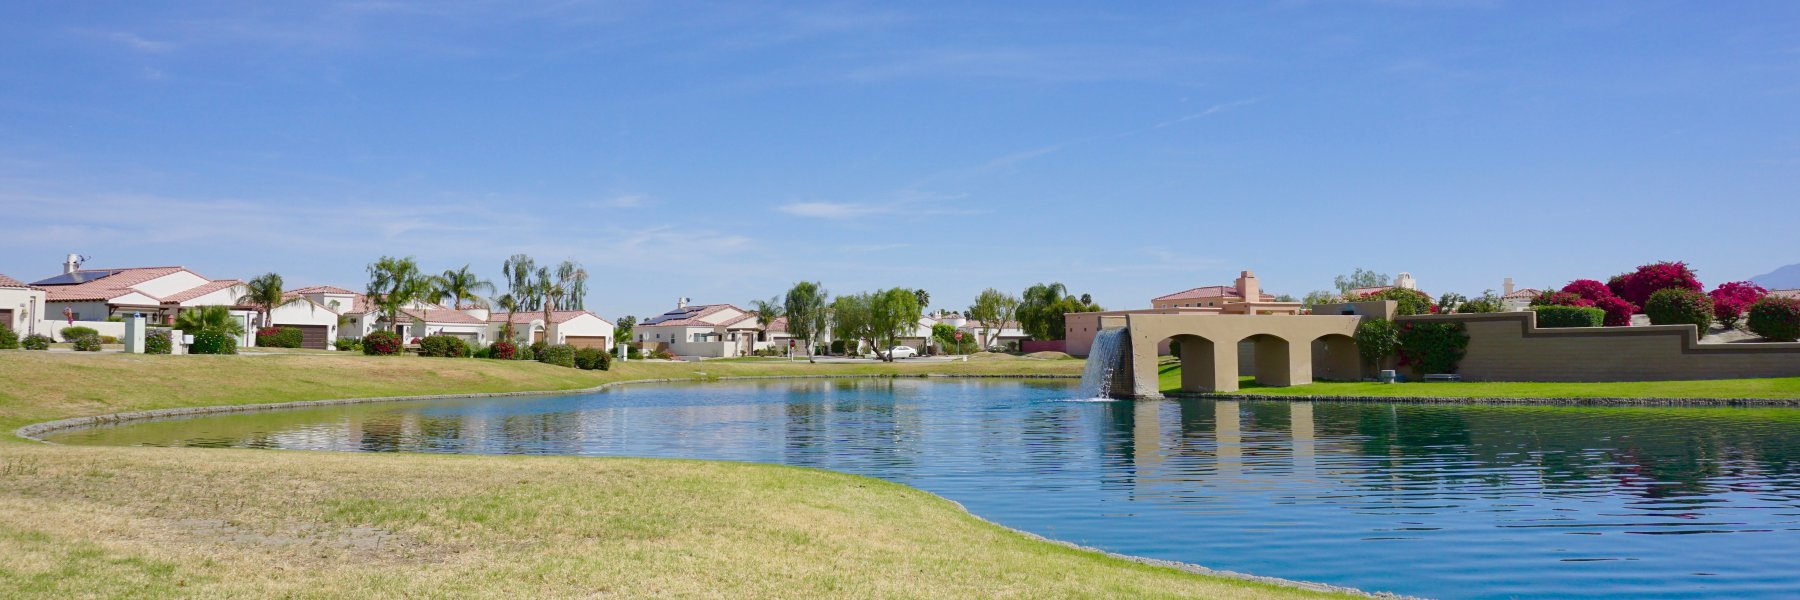 Rio Del Sol is a community of homes in Cathedral City California